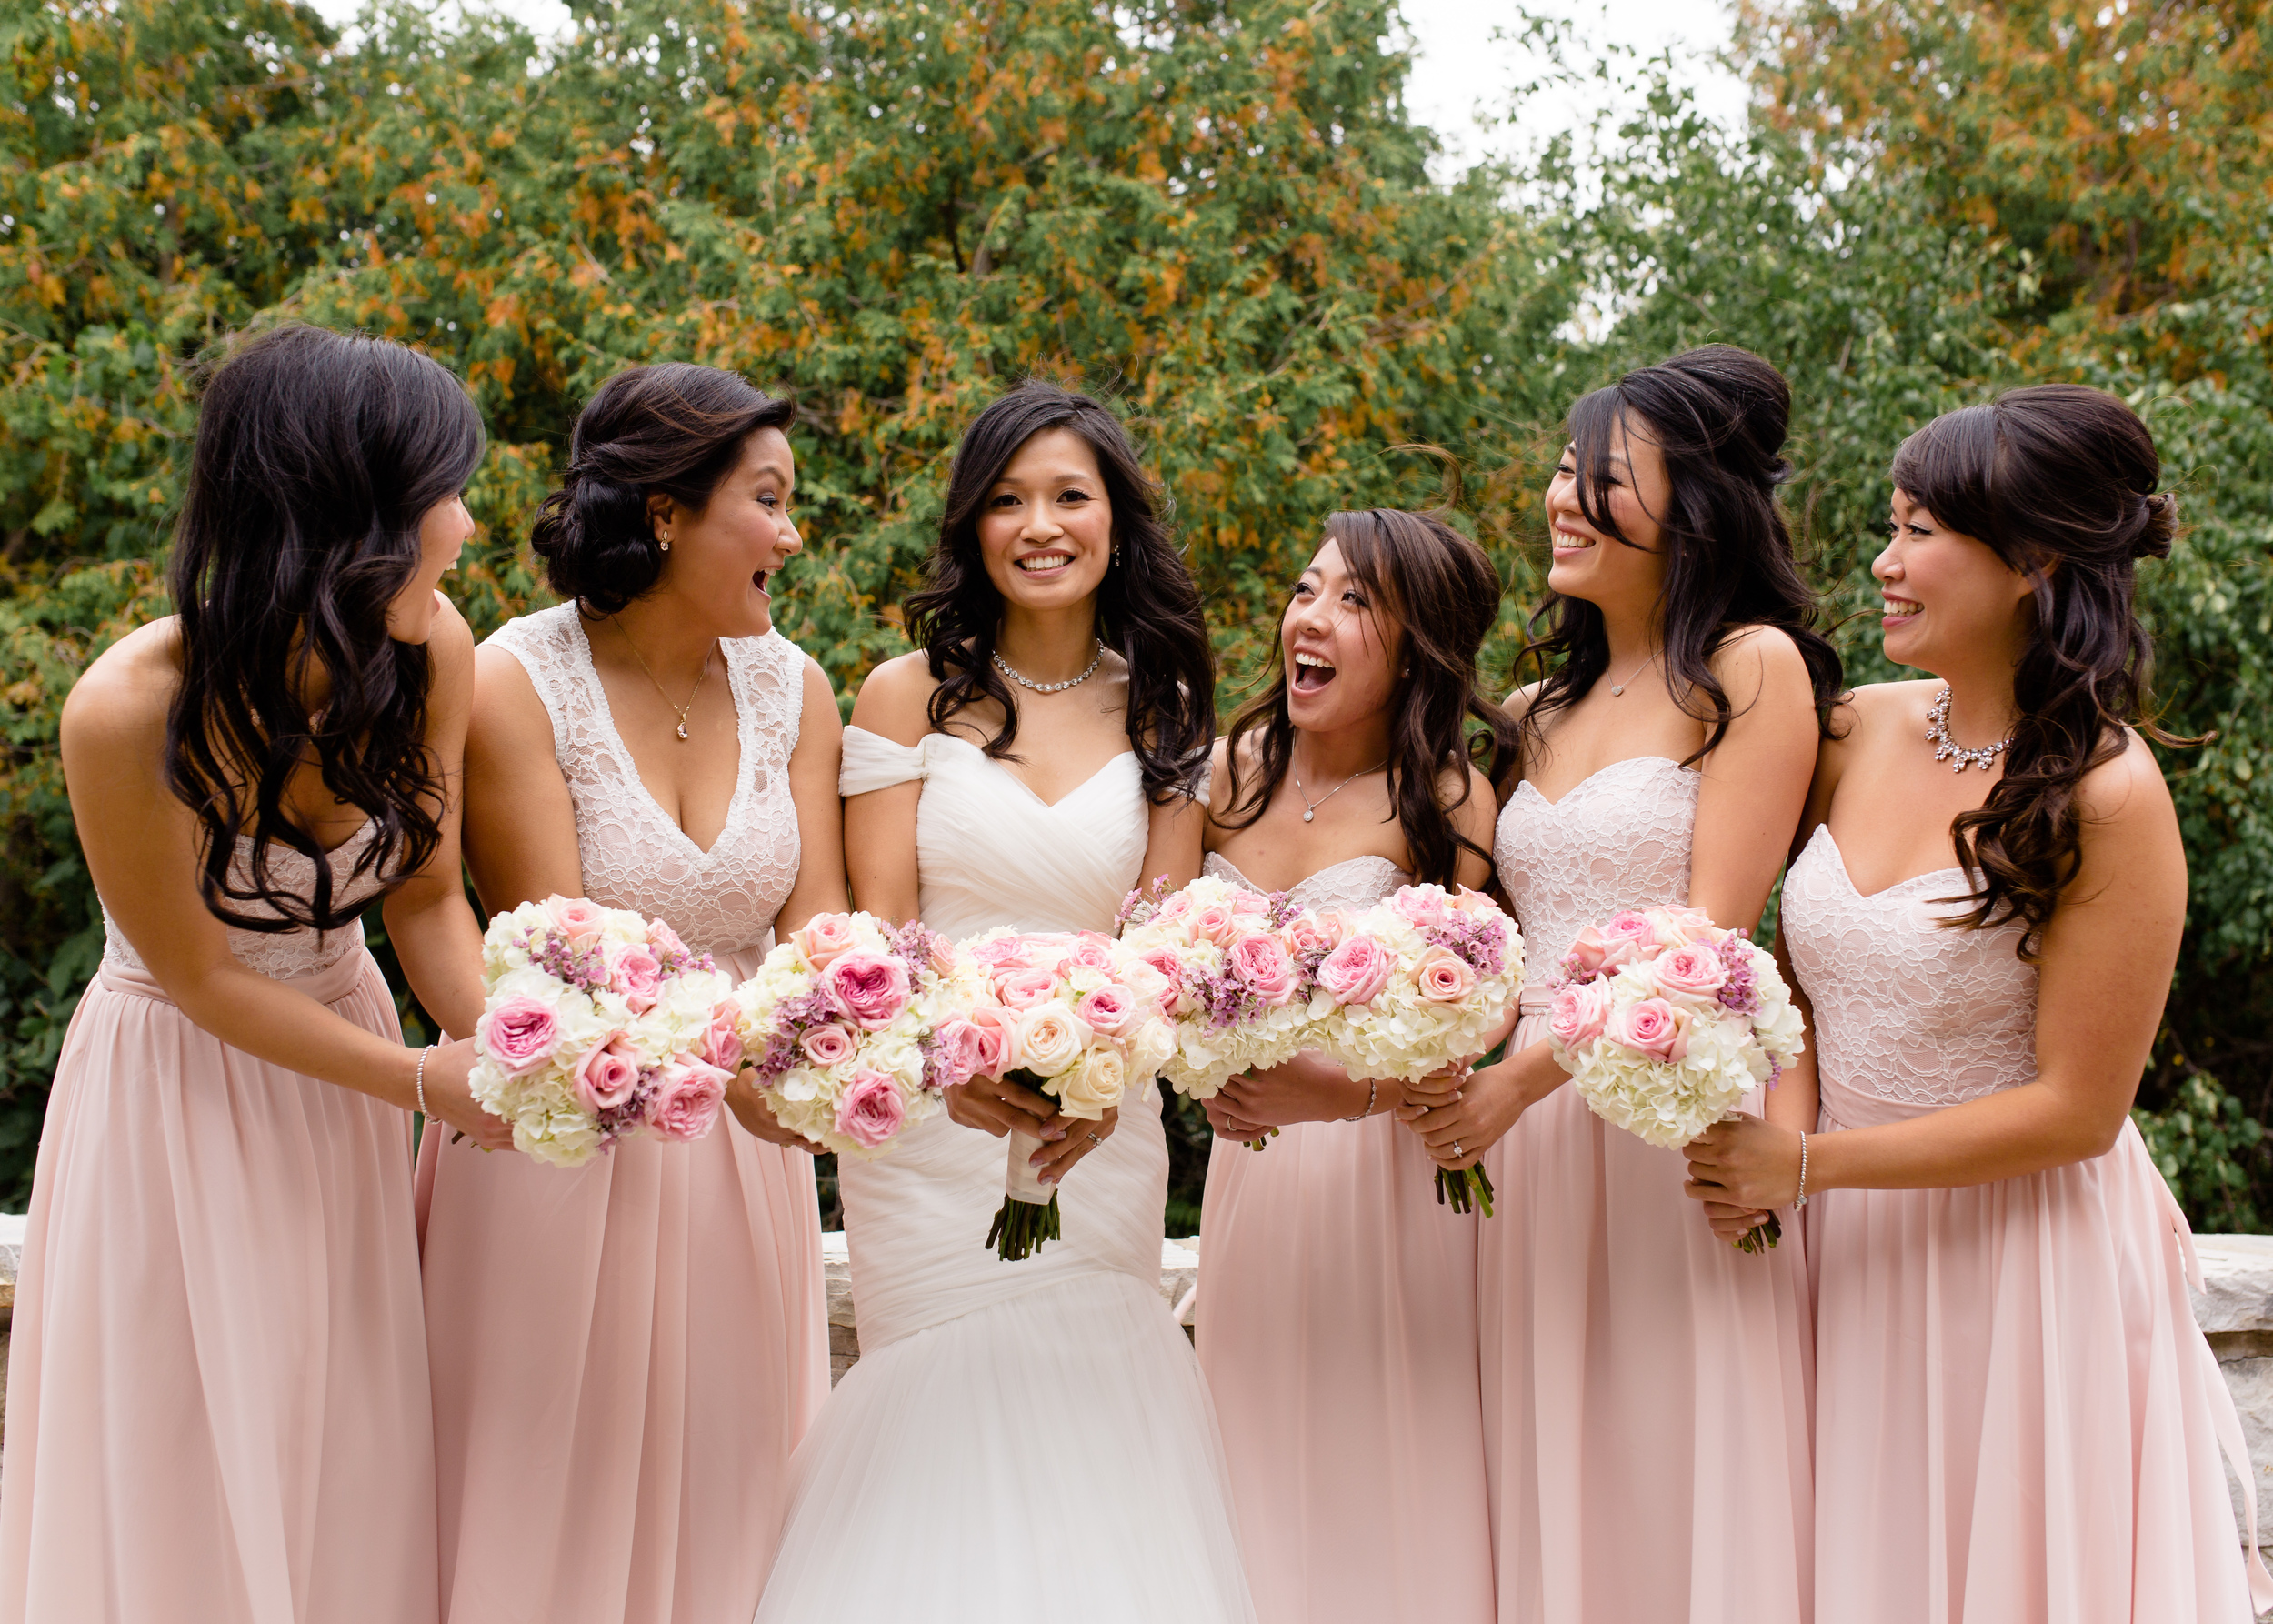 An outdoor photo of the bride and her bridesmaids